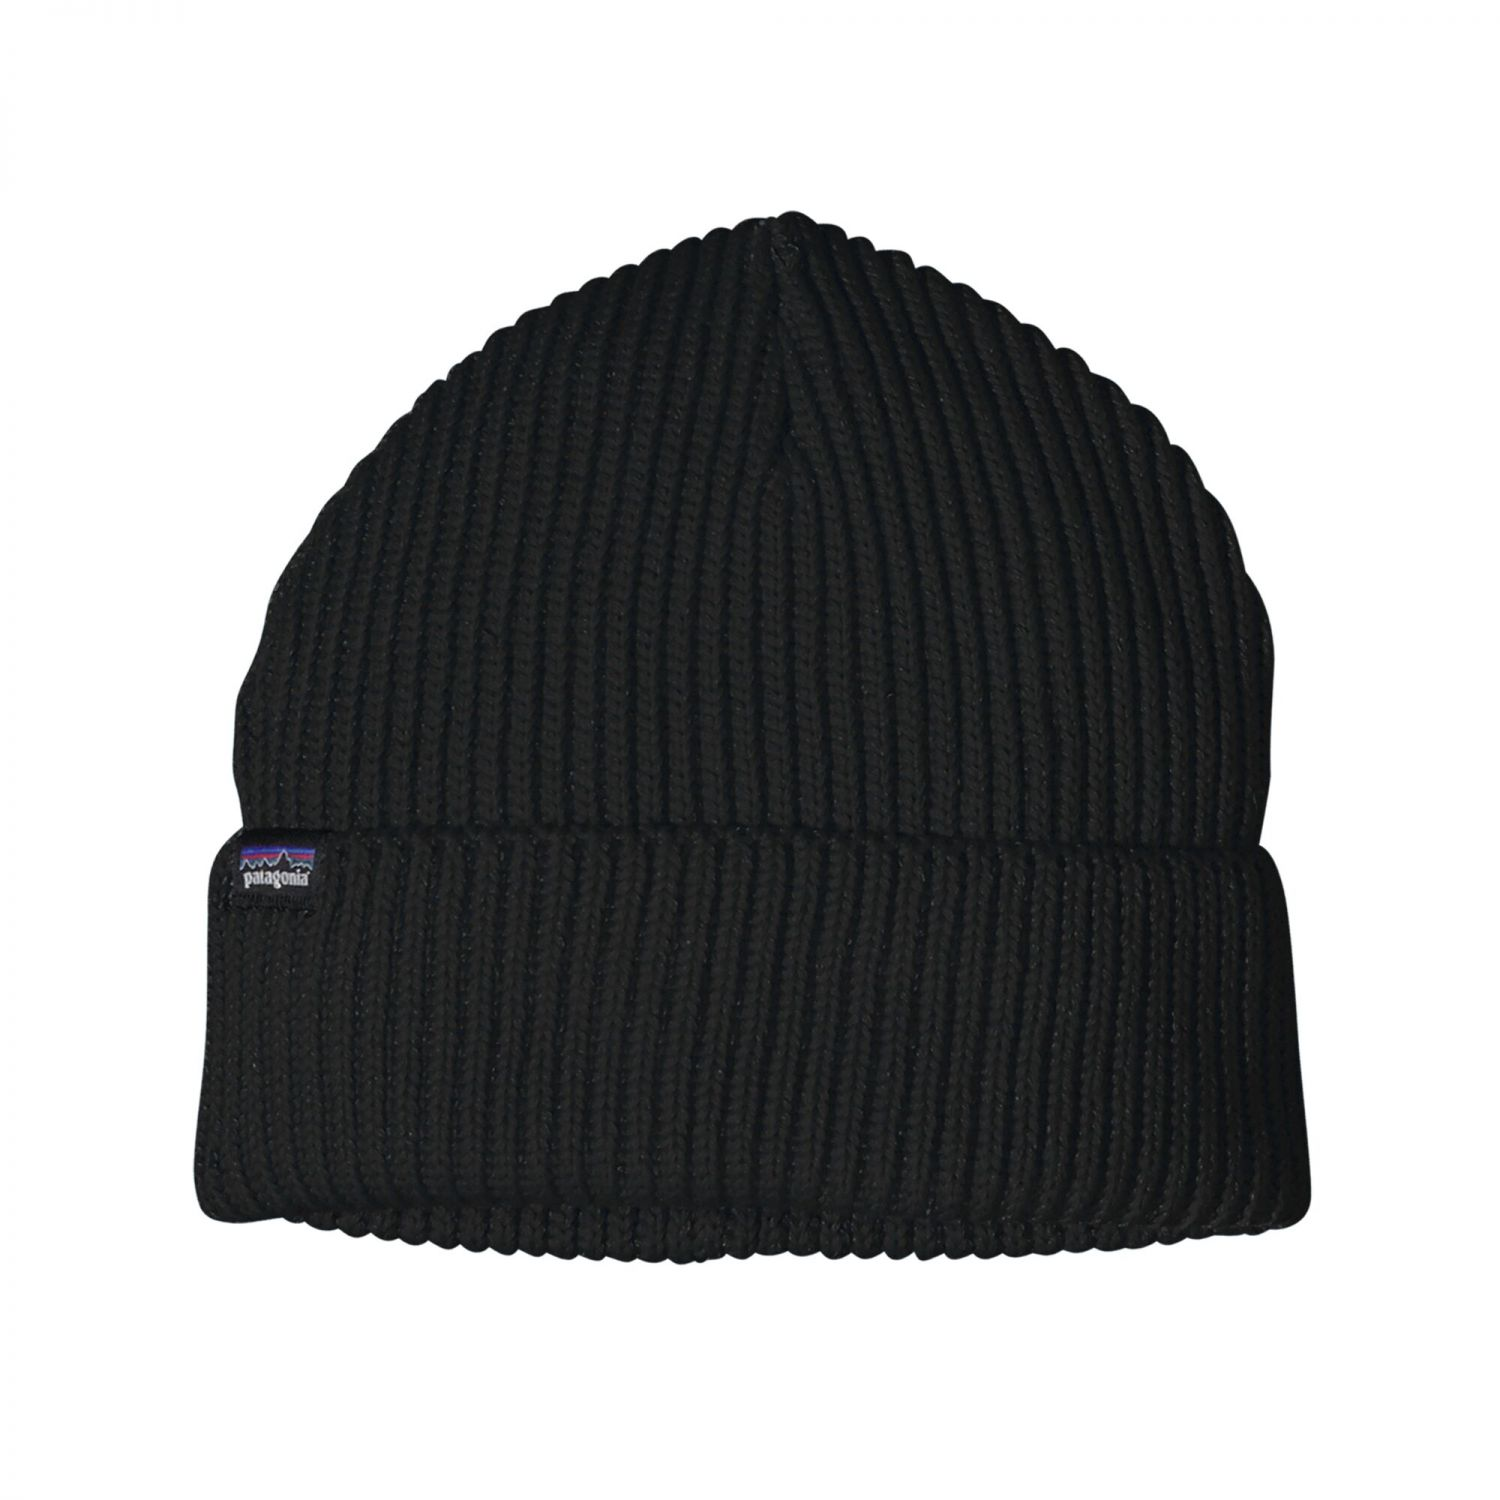 Patagonia Fishermans Rolled Beanie | Mütze Black